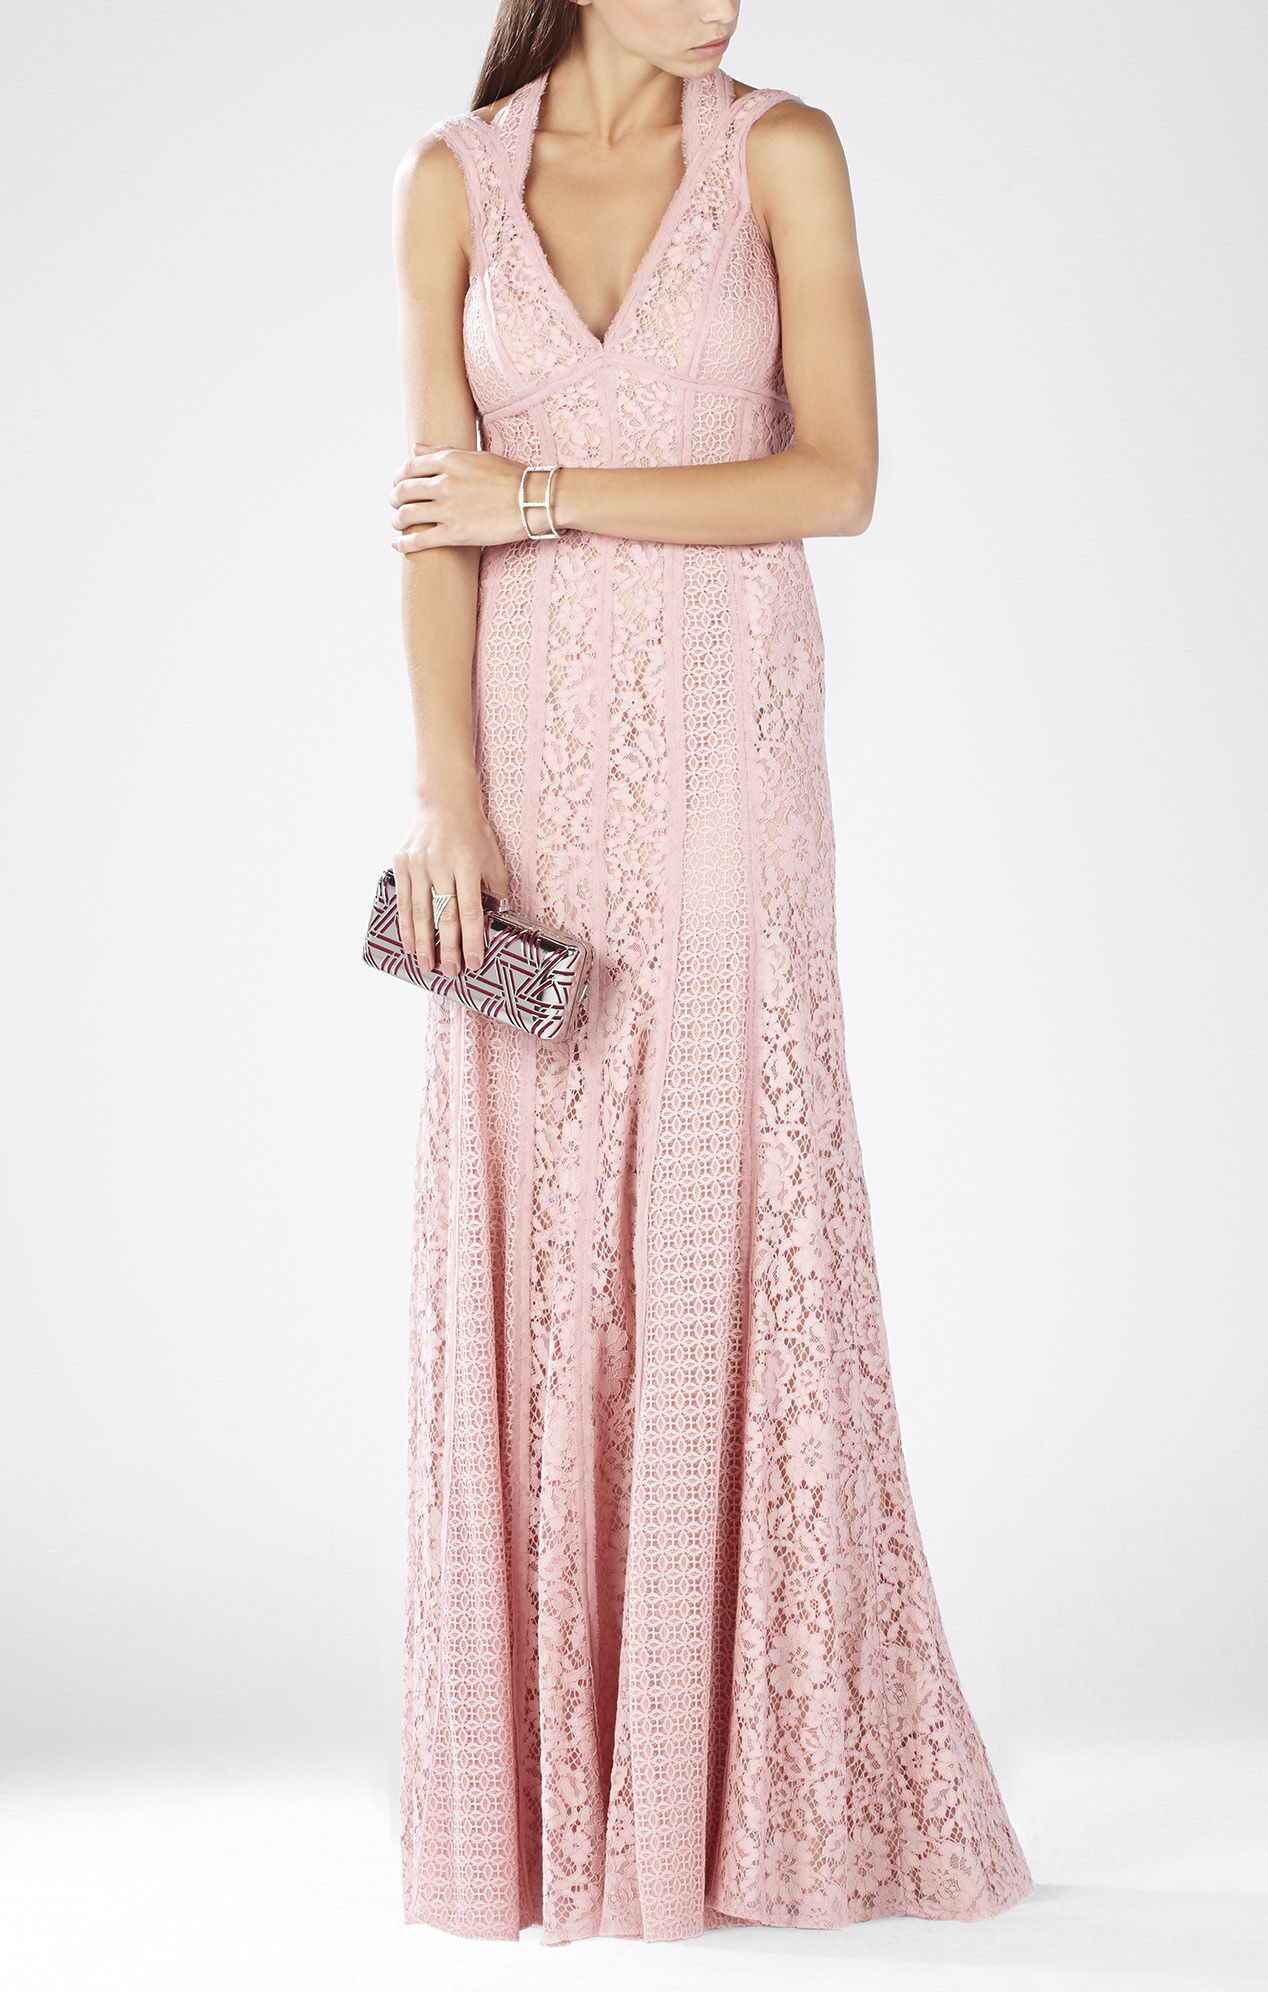 Bcbgmaxazria Sonya Sleeveless Lace-blocked Gown in Pink   Lyst